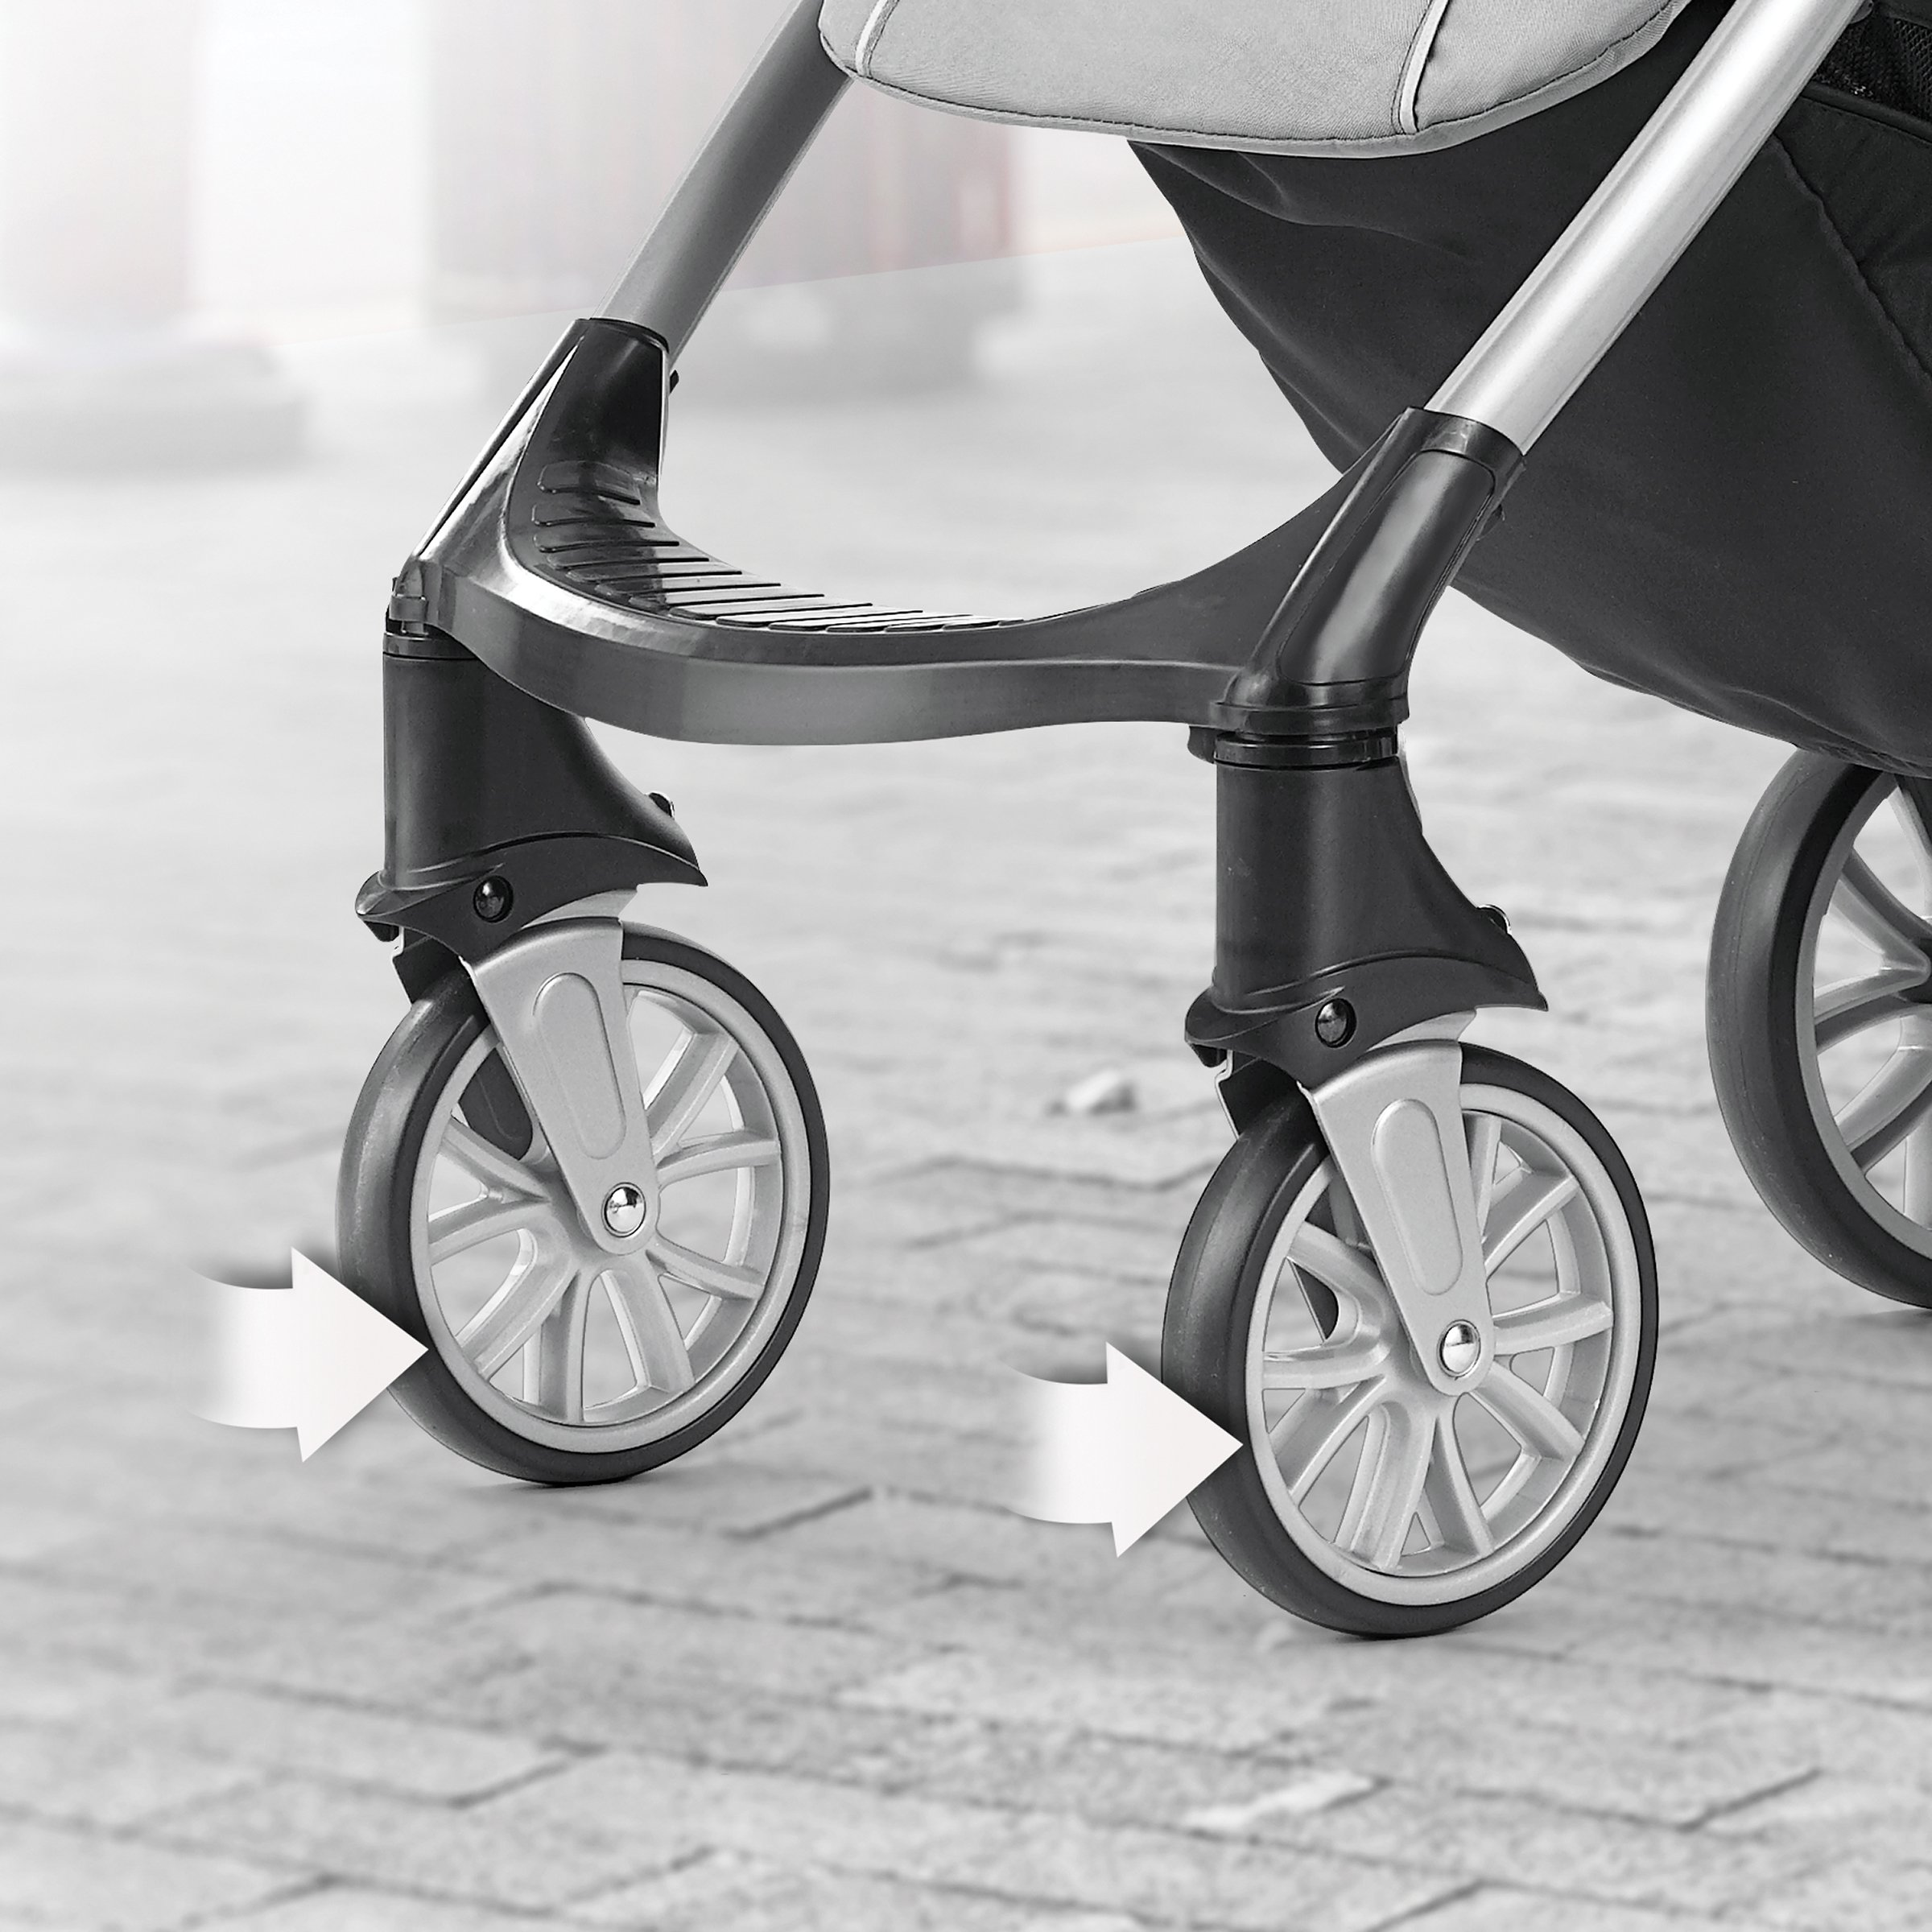 Chicco Mini Bravo Lightweight Stroller, Mulberry by Chicco (Image #7)